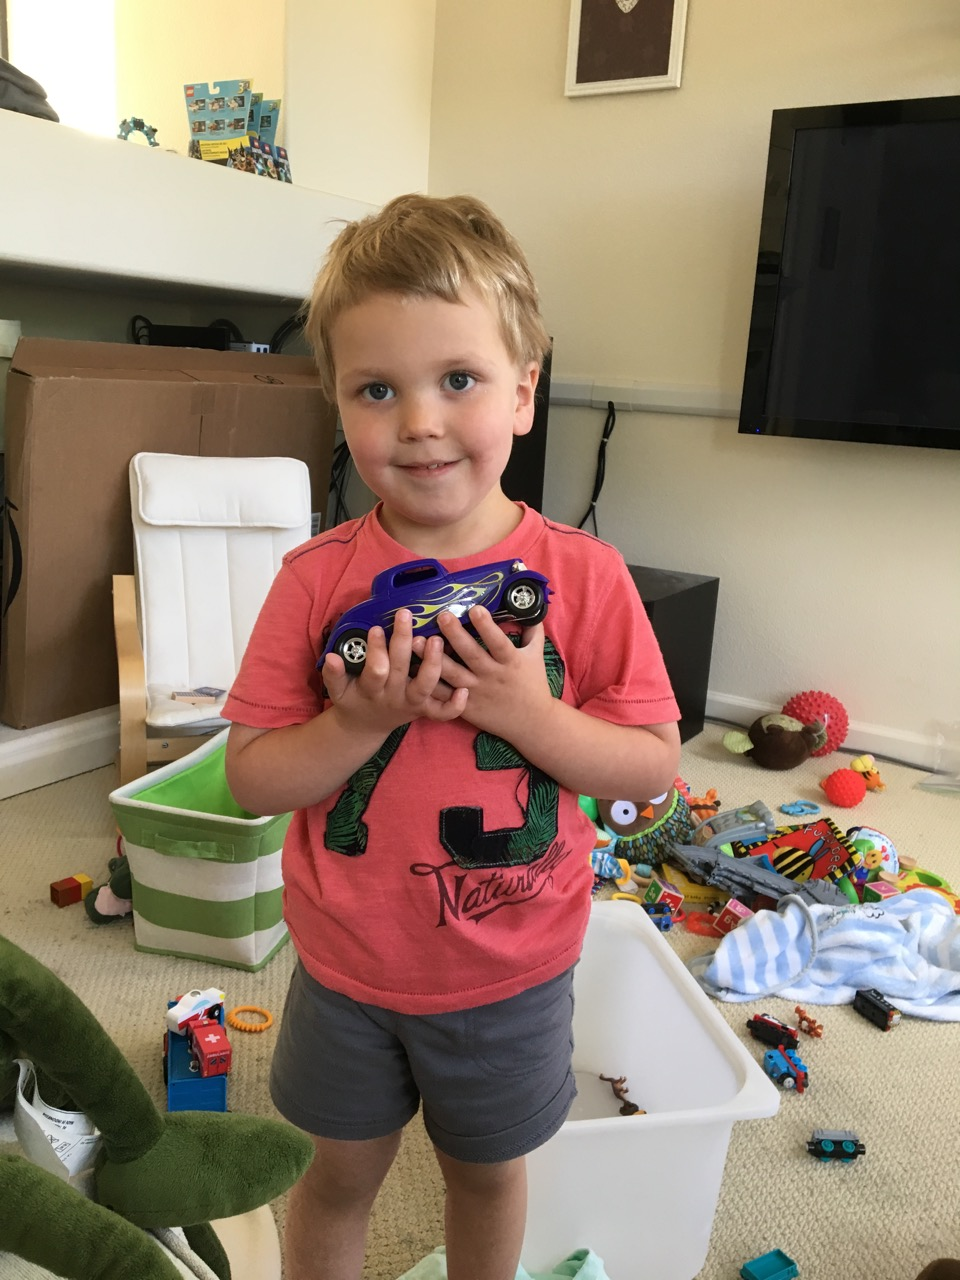 W23: He made a model car with dad